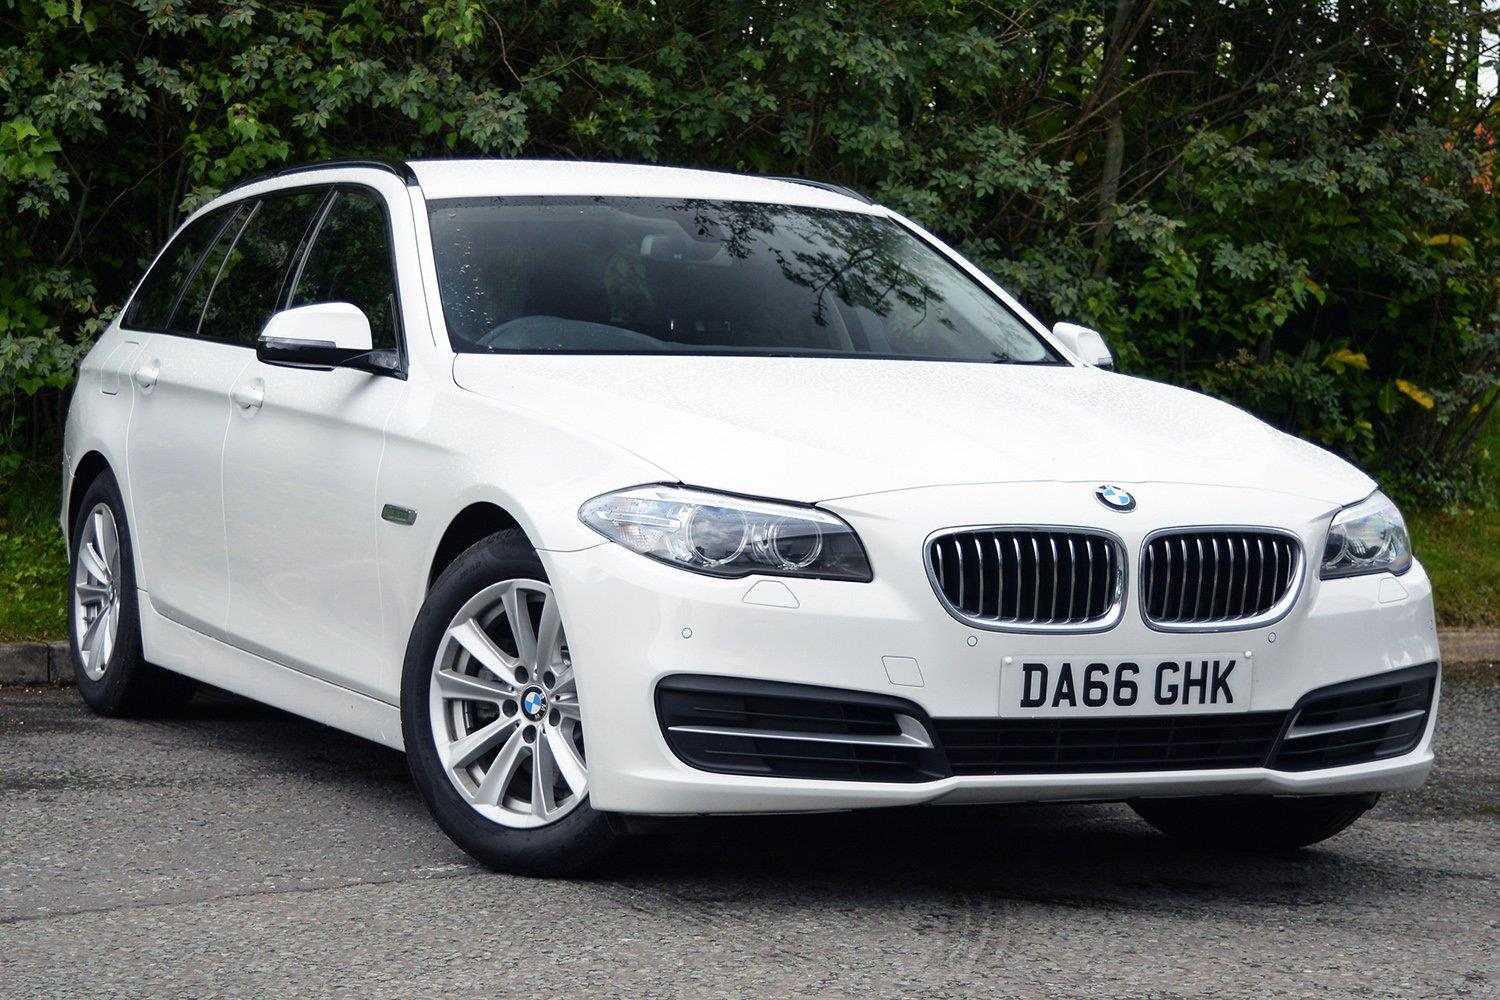 BMW 5 Series Touring DA66GHK - Image 10